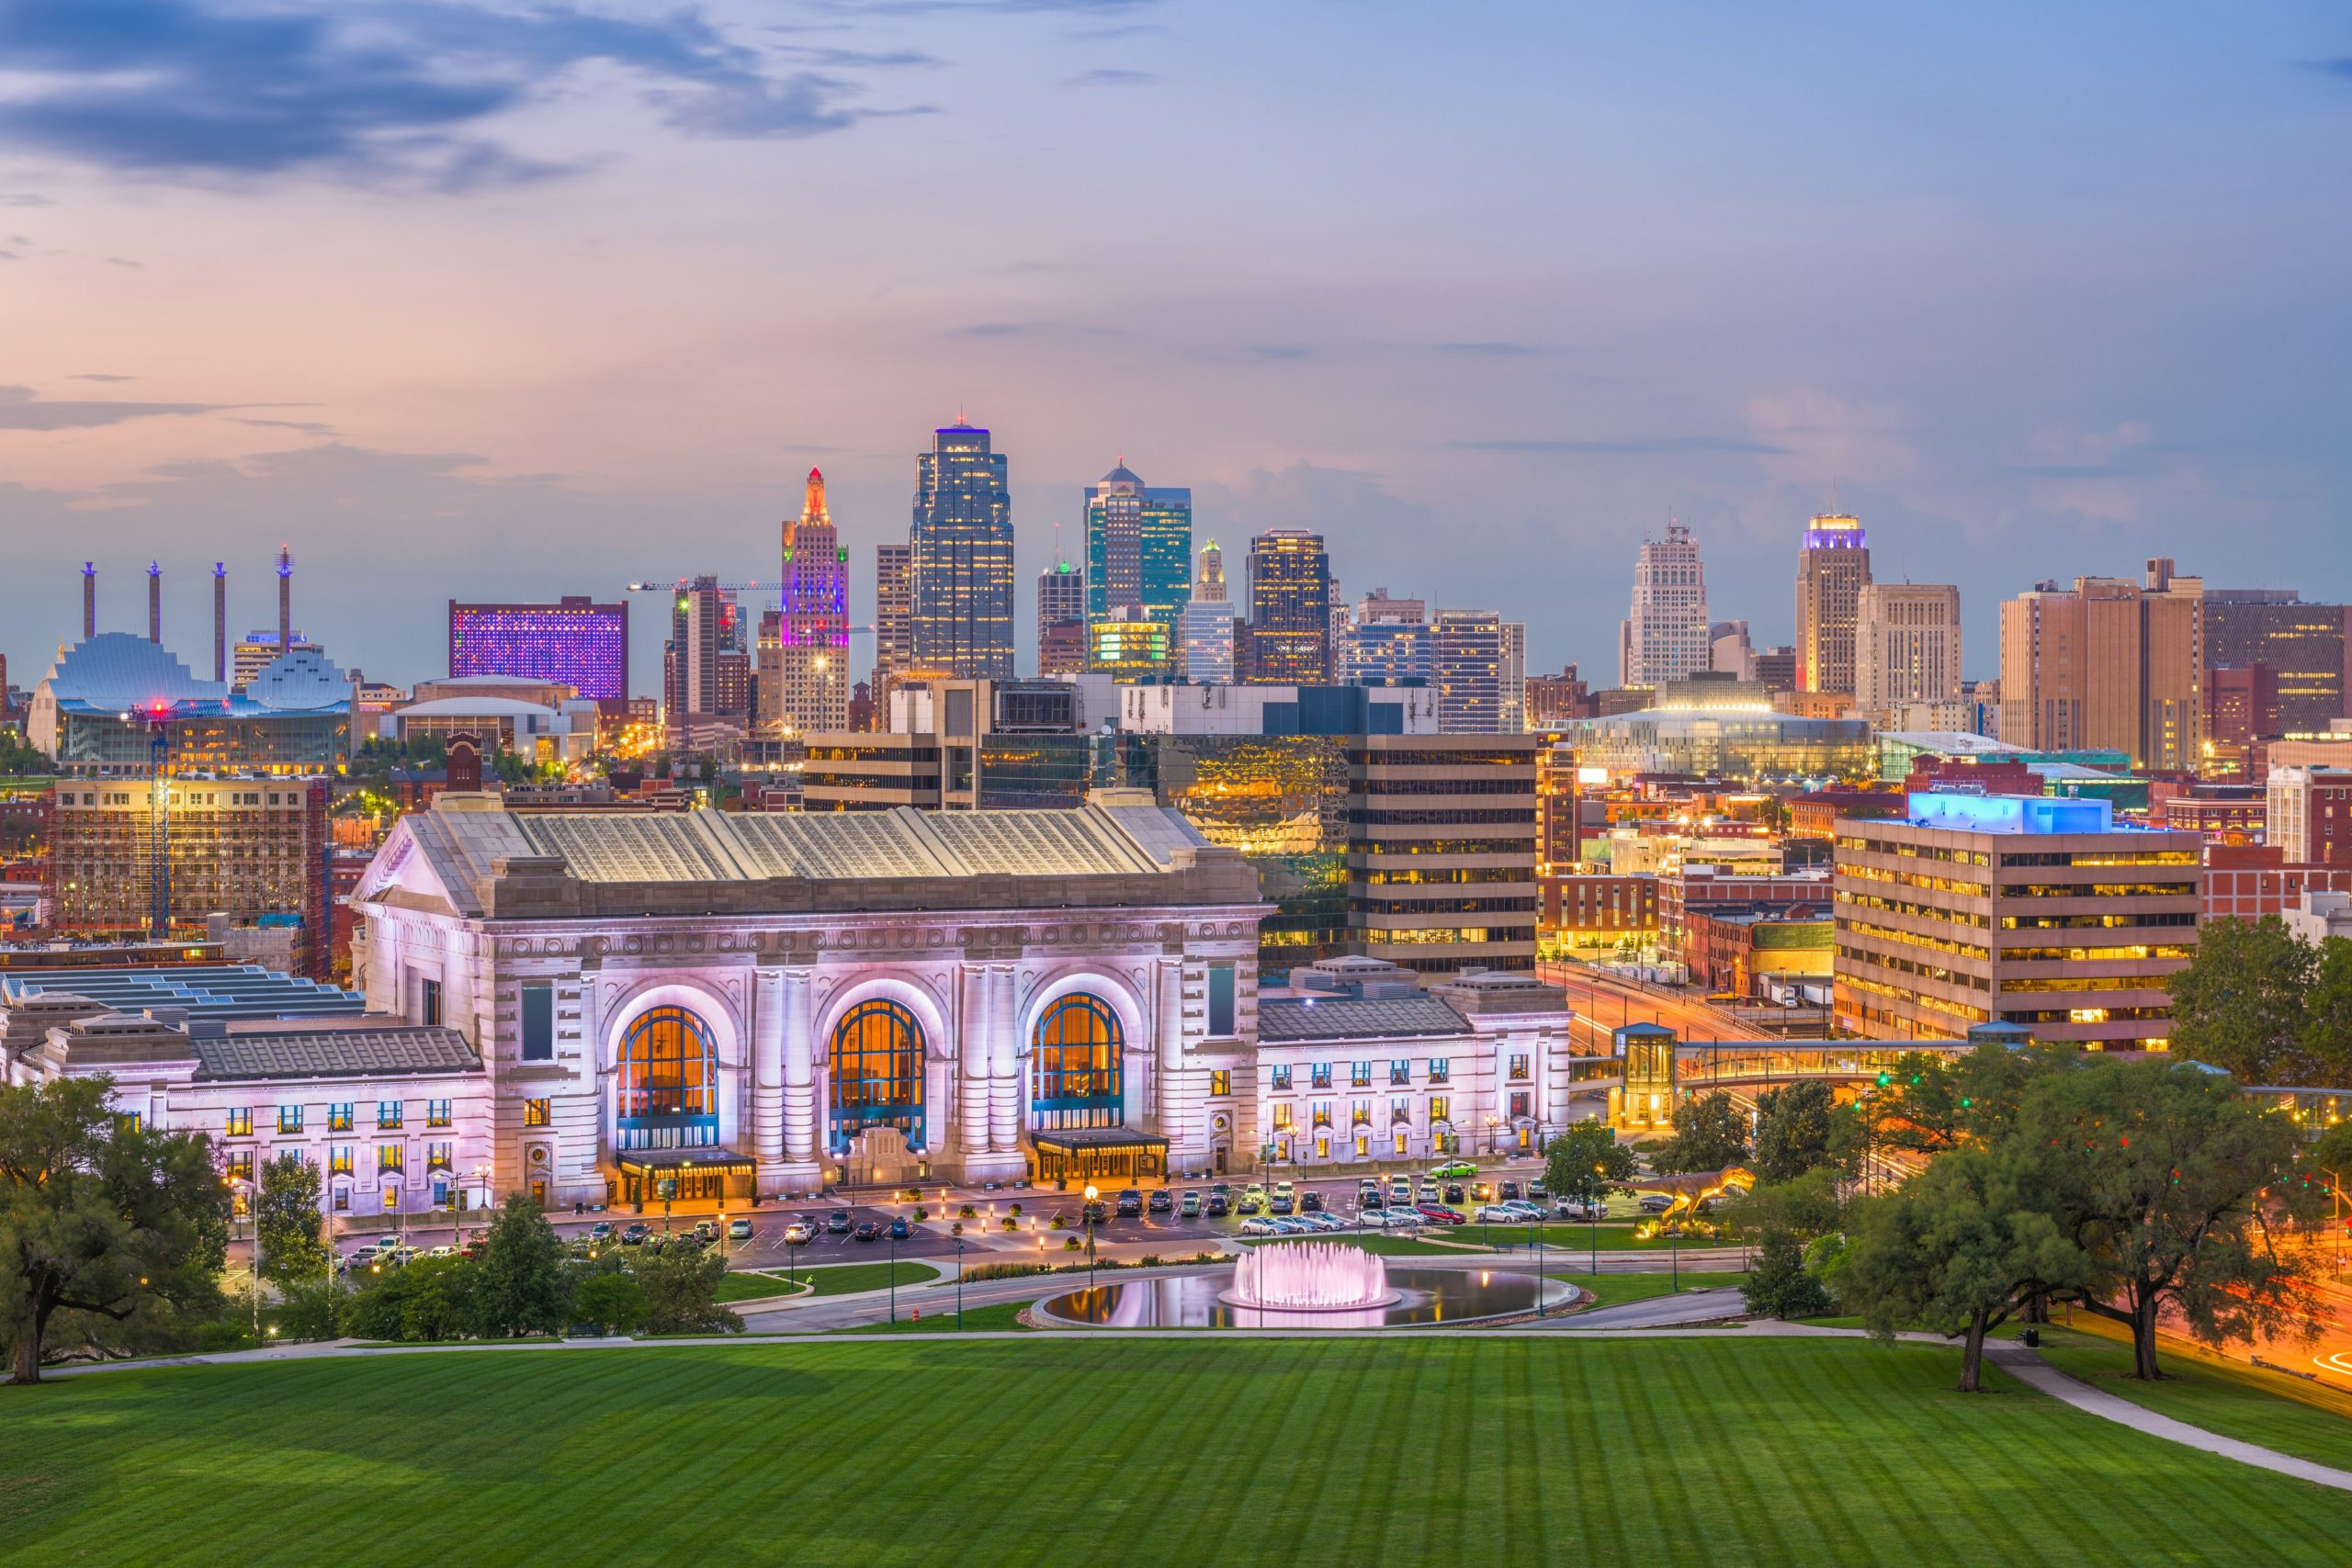 Kansas City skyline with Union Station in the foreground